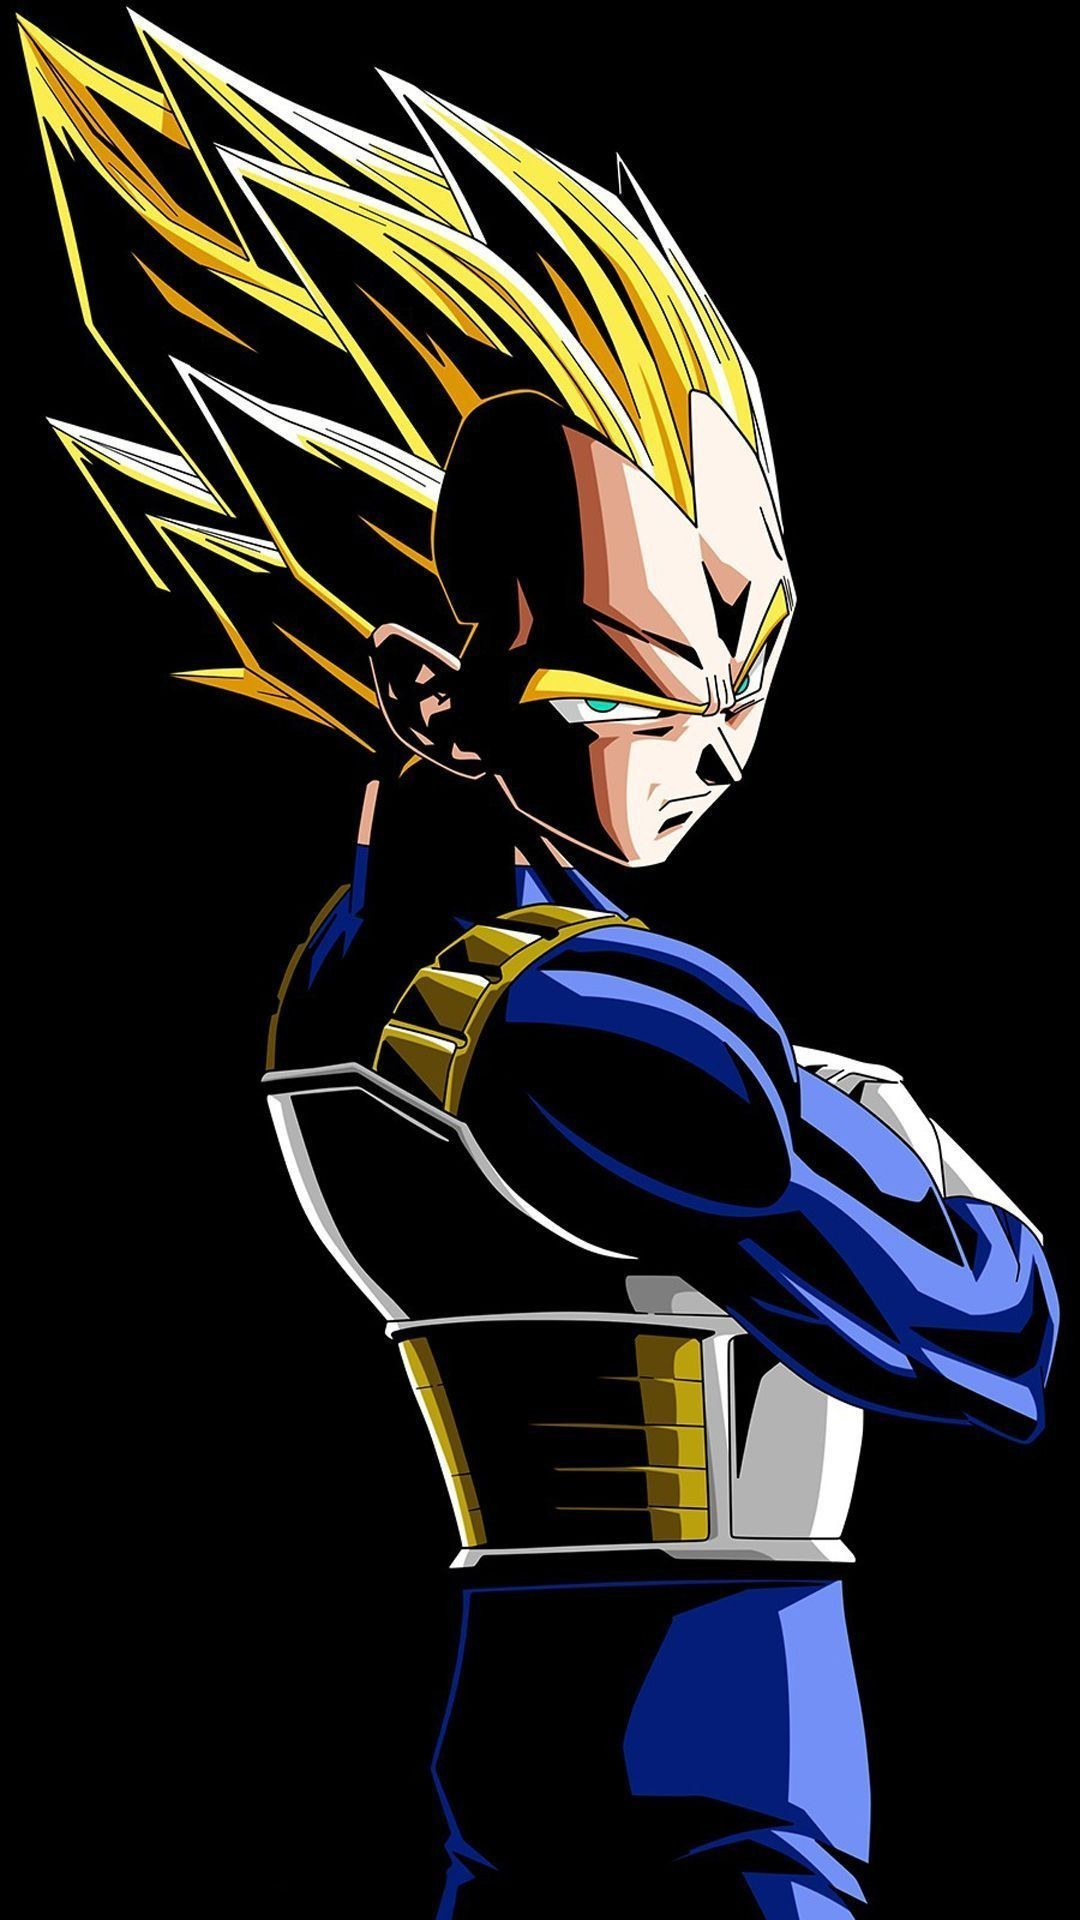 Vegeta Wallpaper For Android 76 Images